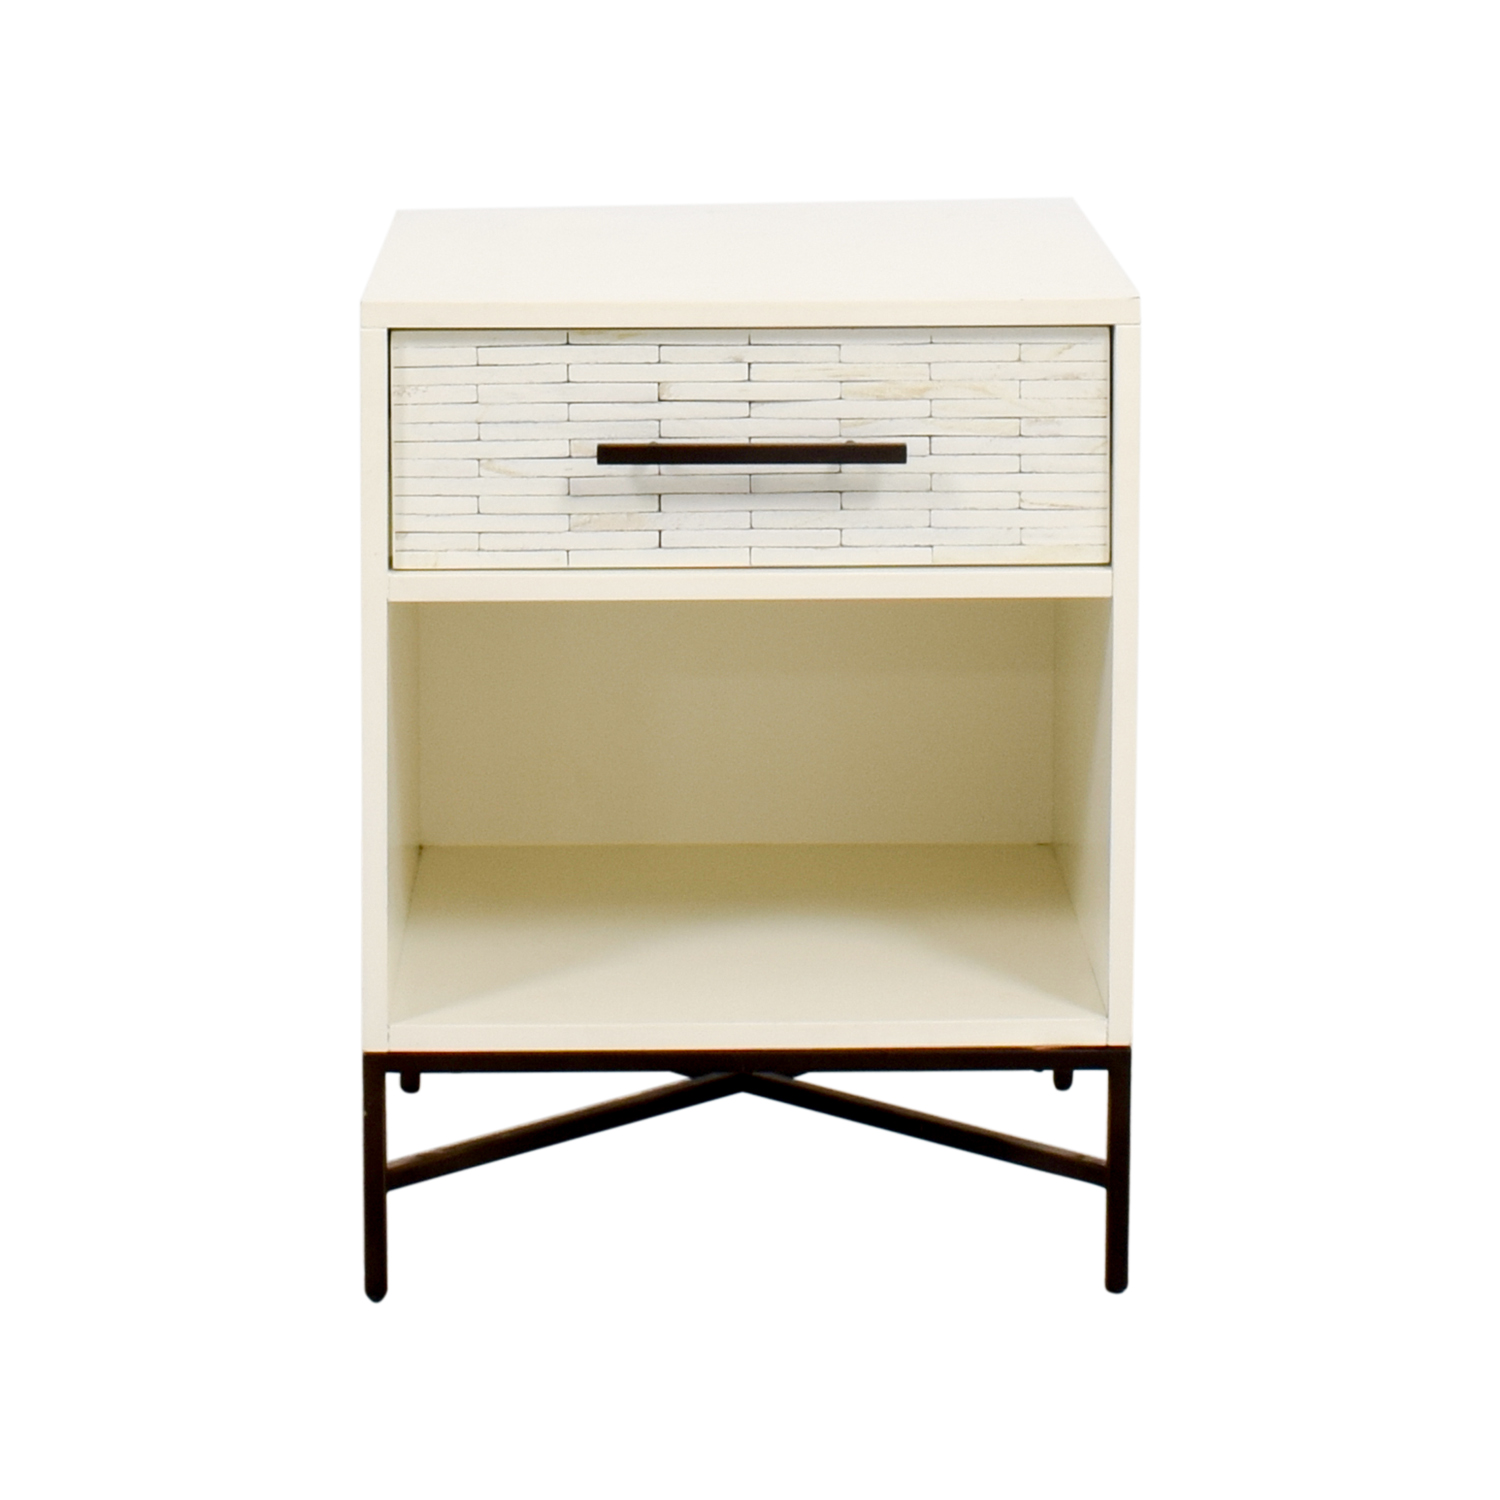 West Elm West Elm Wood-Tiled Nightstand